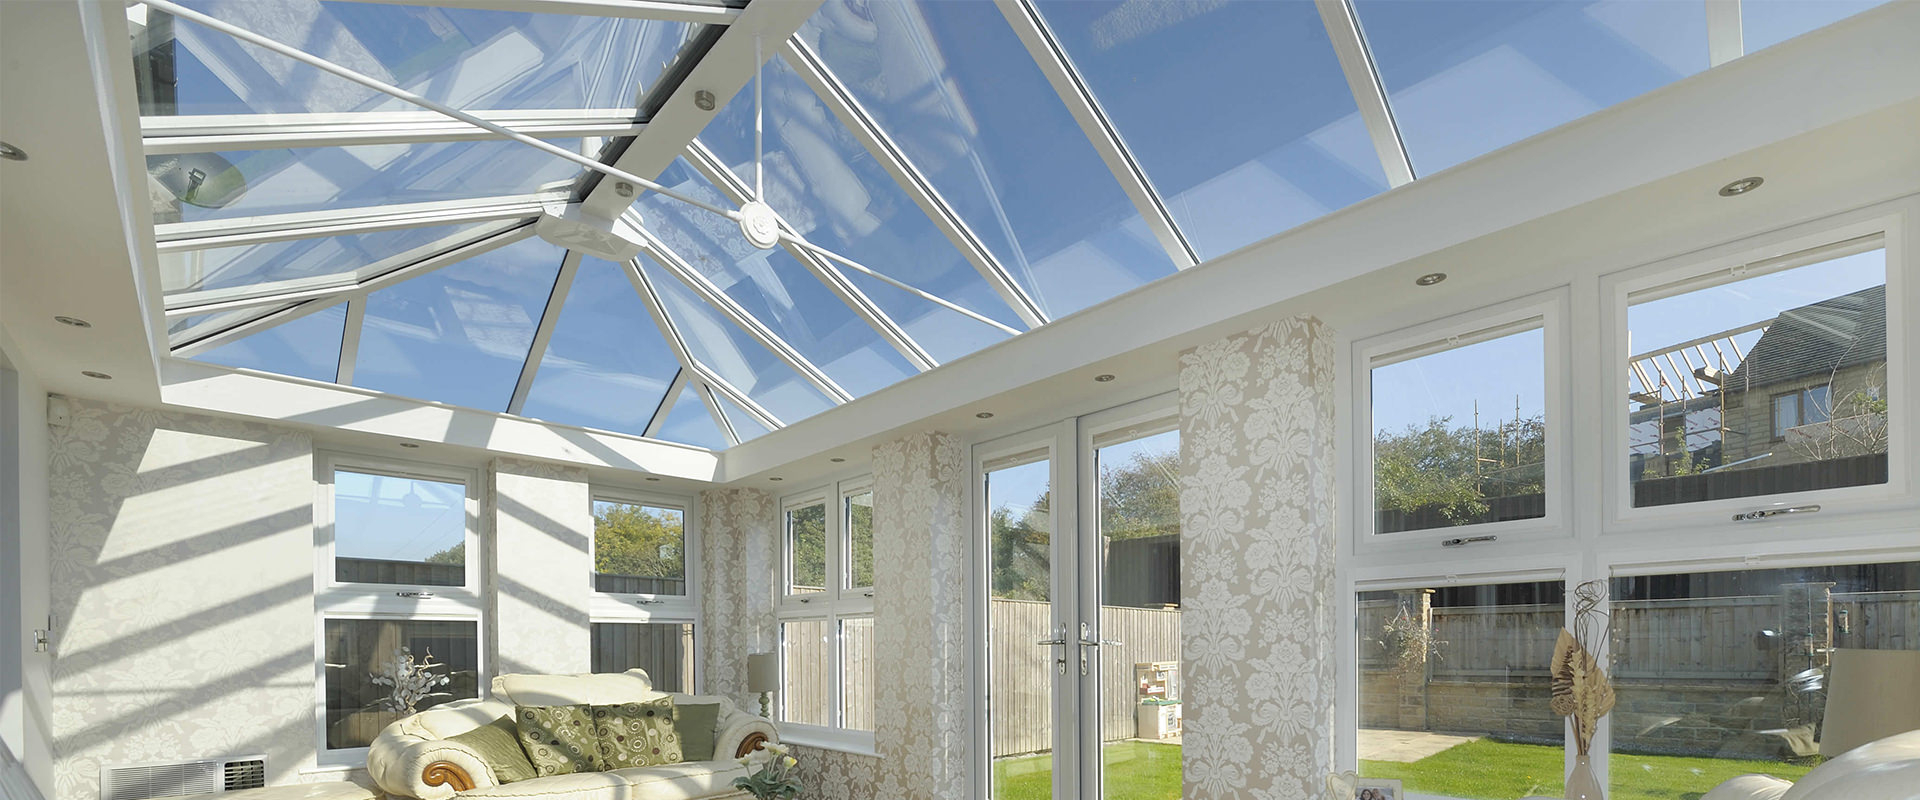 Conservatory-Roofs-2